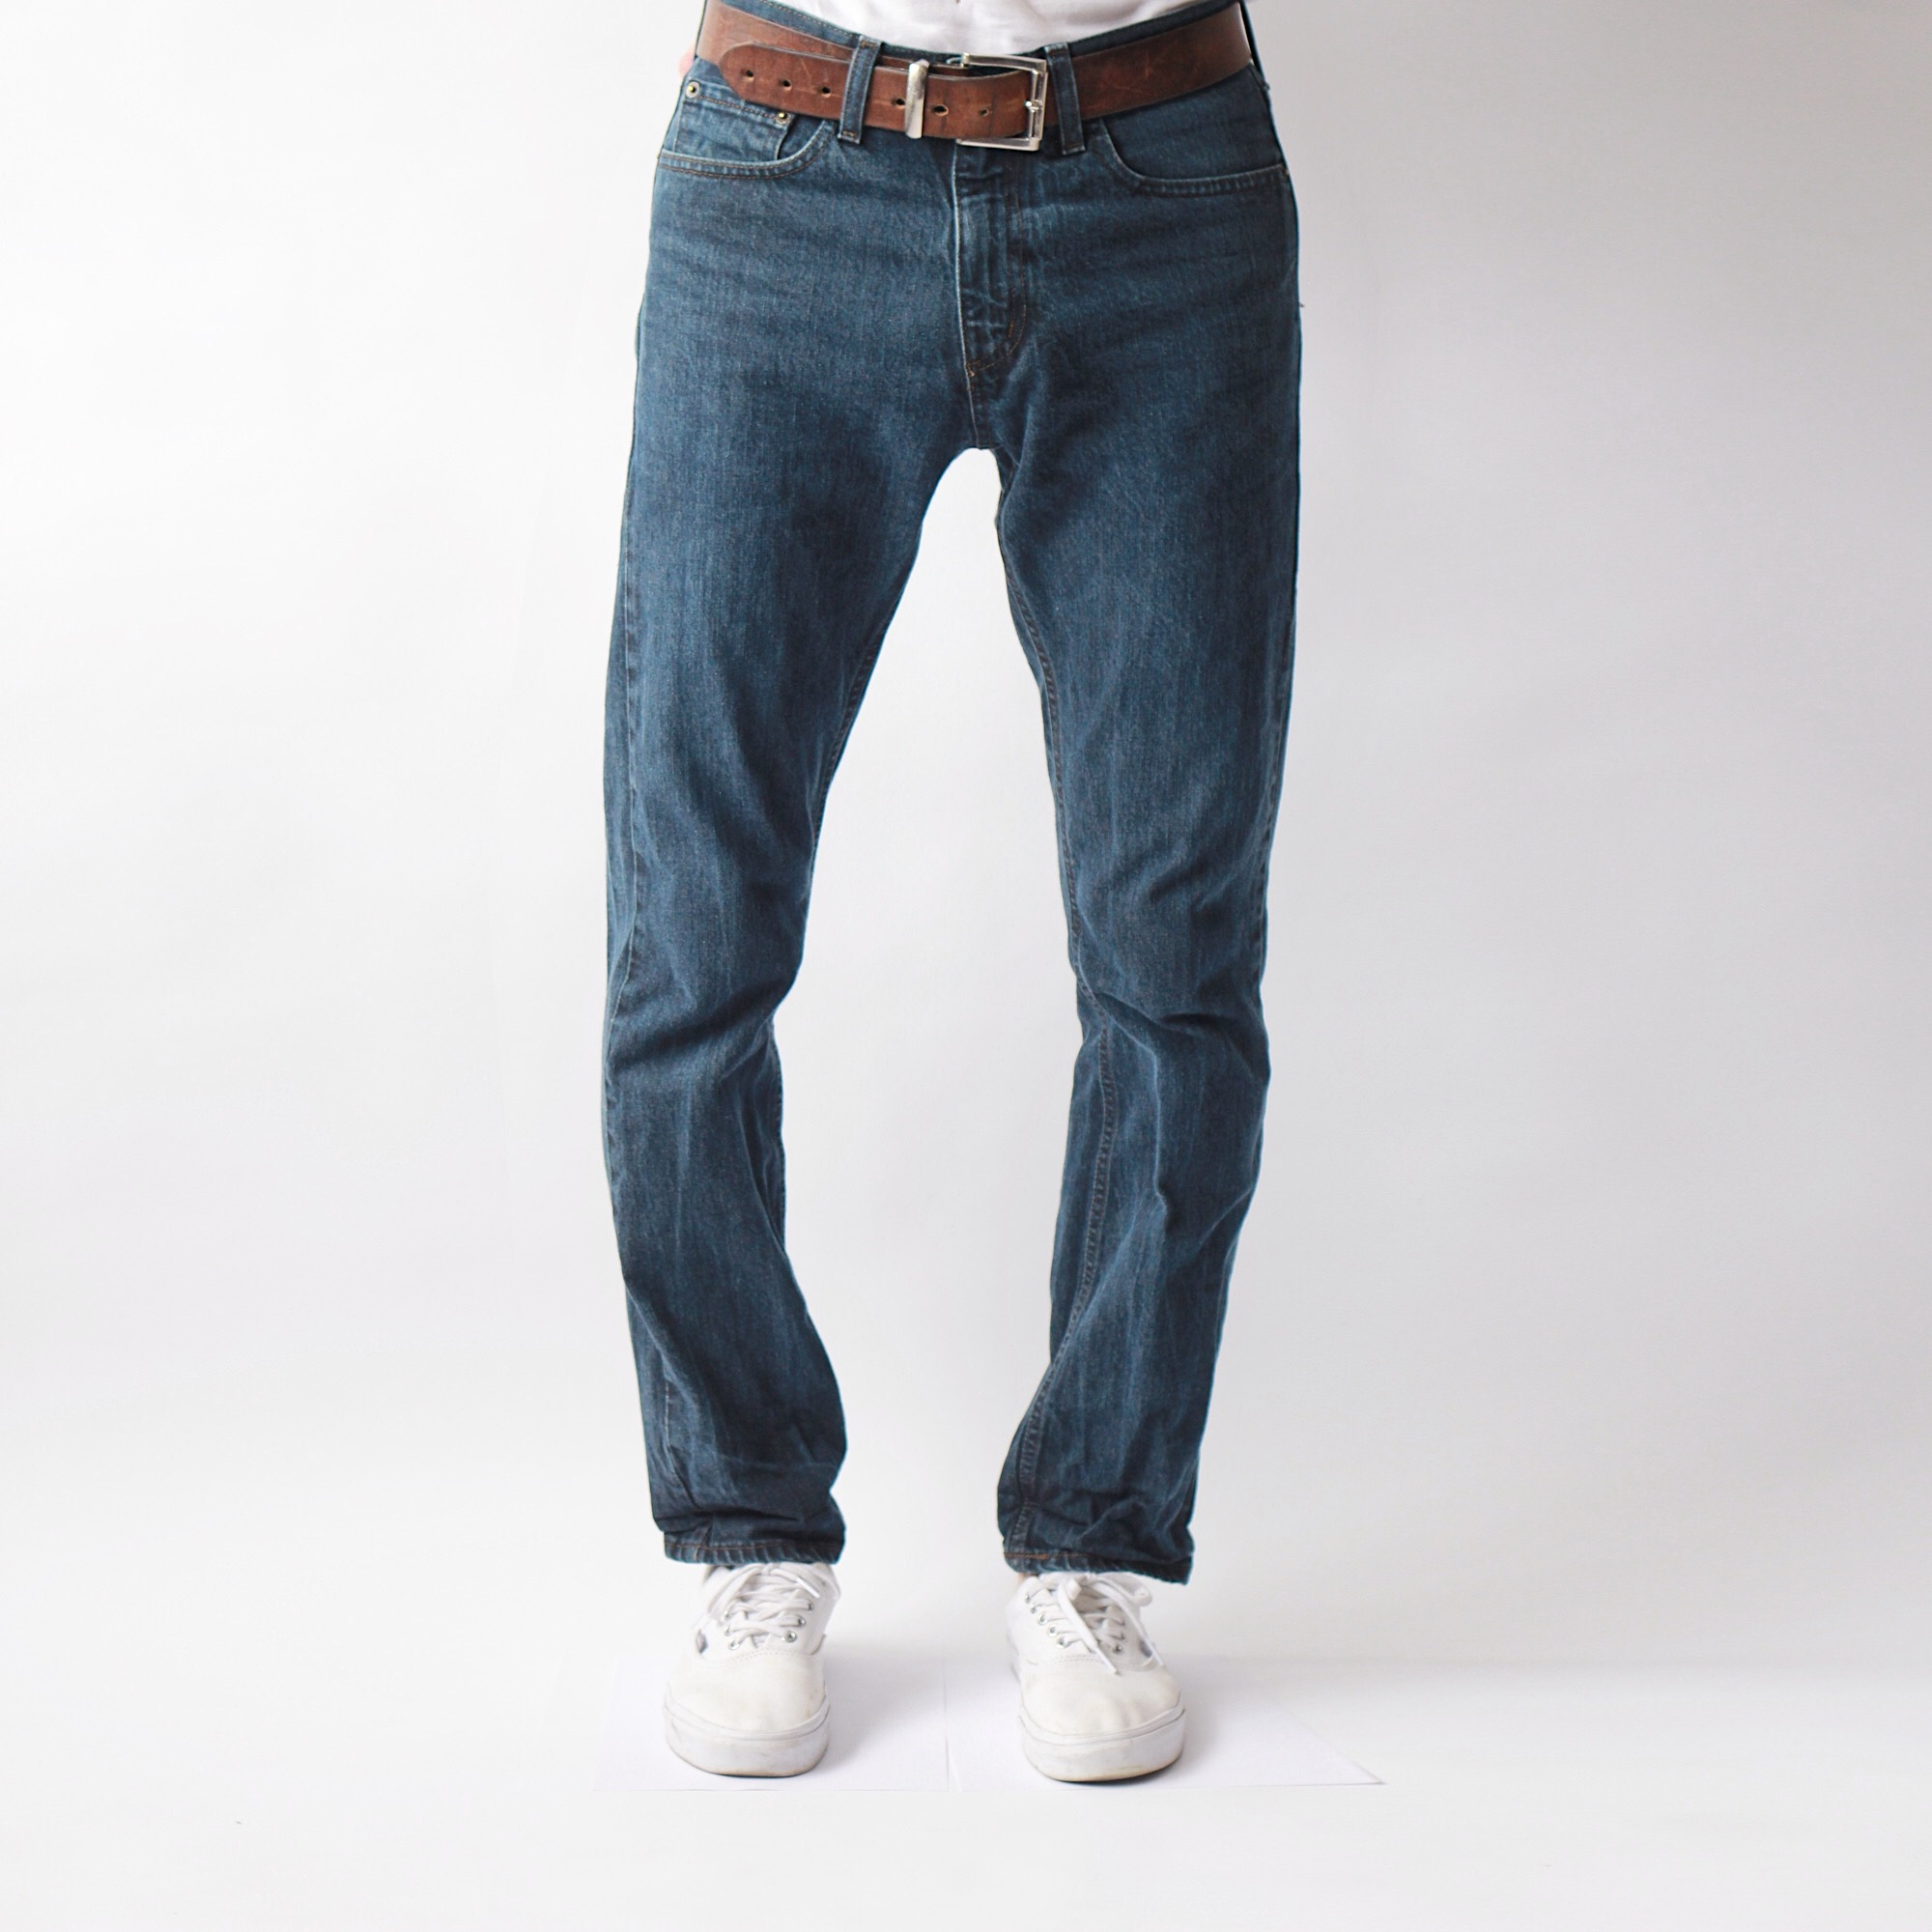 Original Joe Fresh Denim Pants